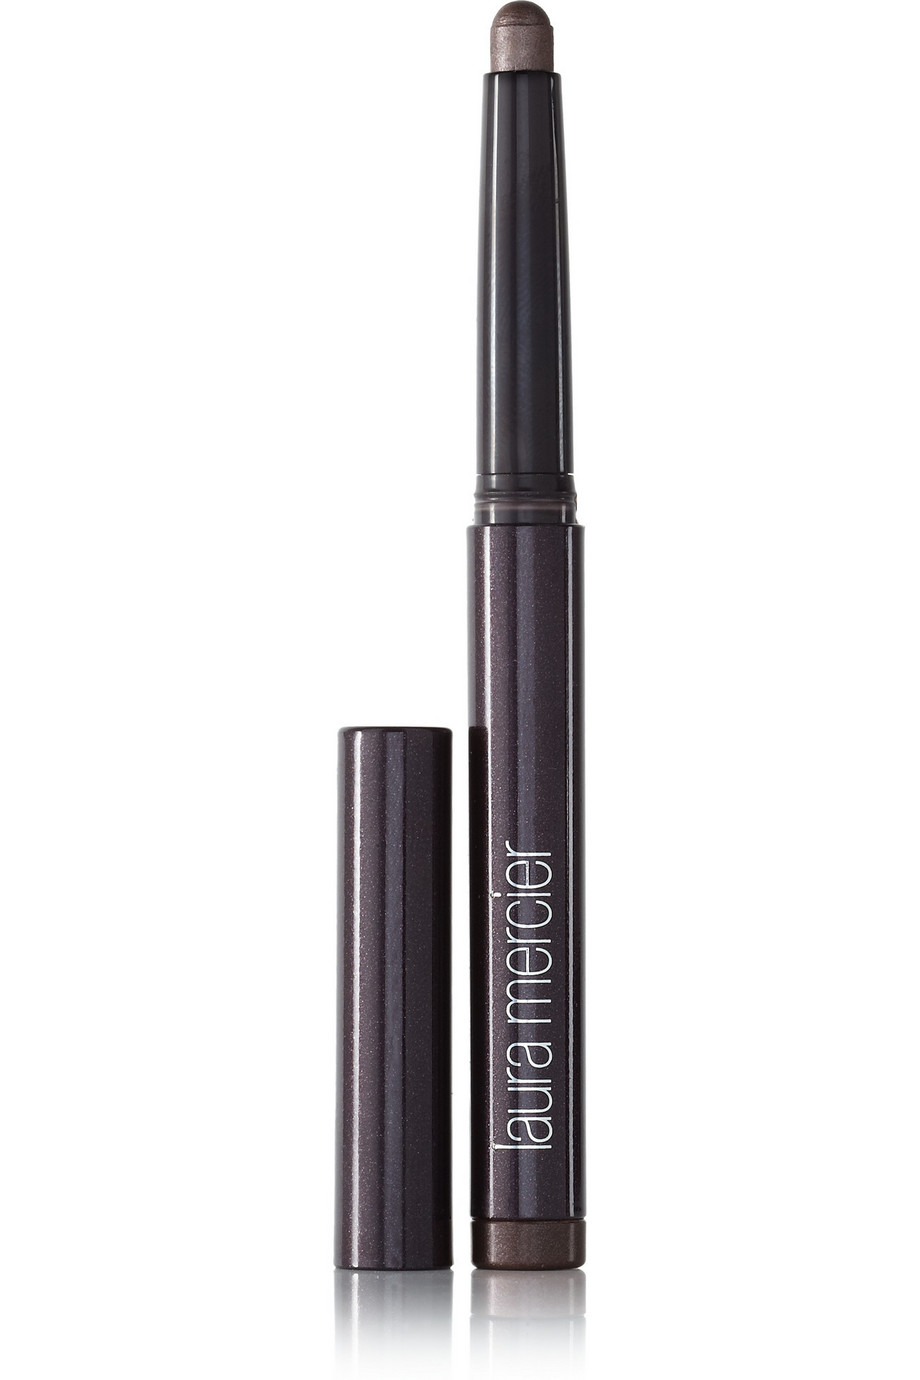 Laura Mercier Caviar Stick Eye Color - Cocoa